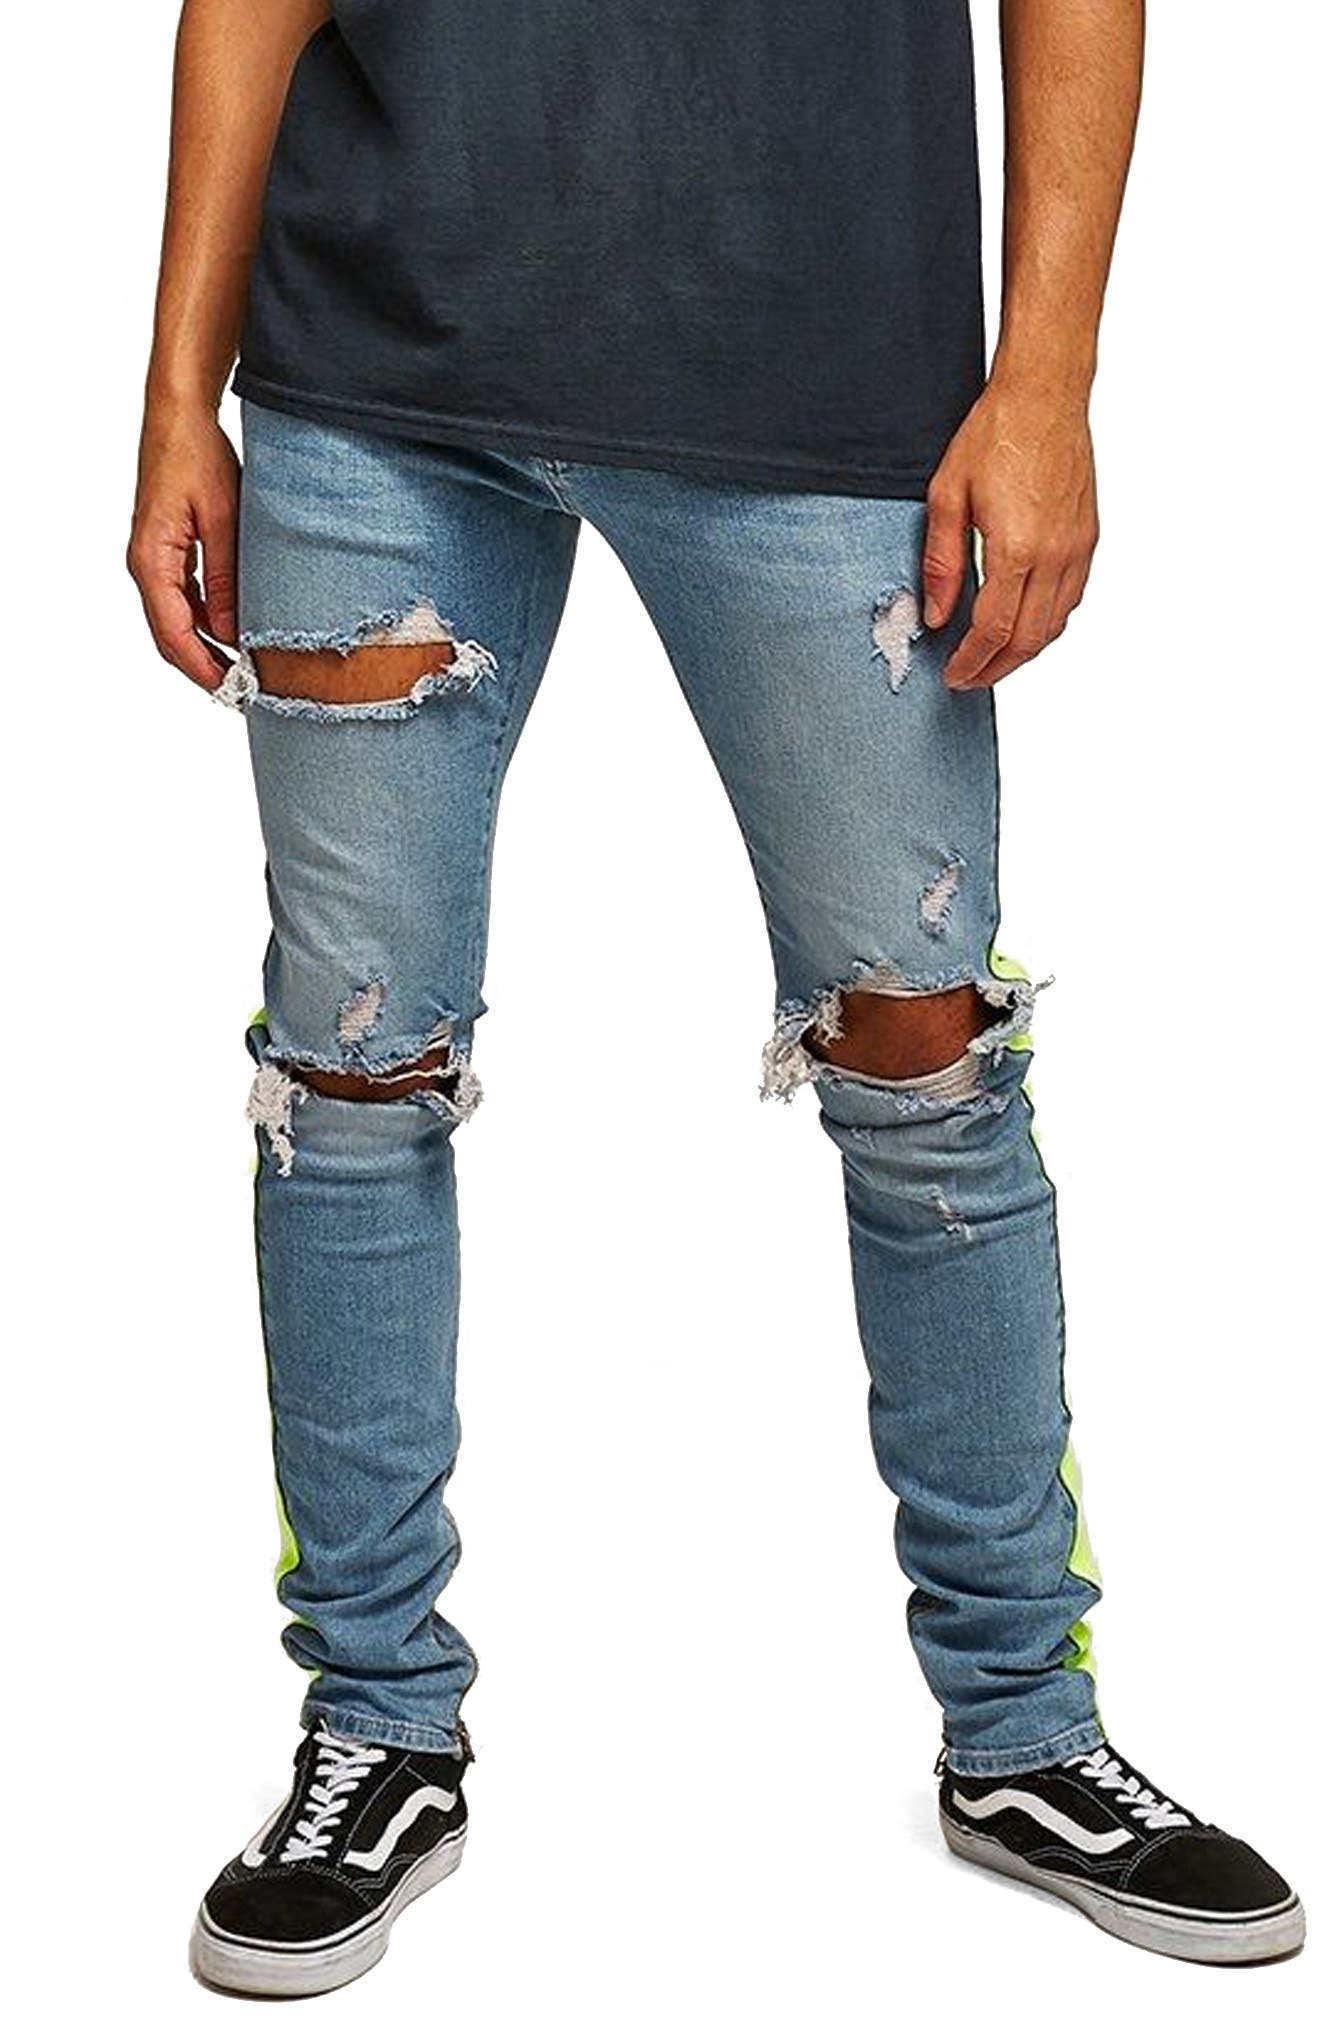 Side Tape Stretch Skinny Fit Jeans,                             Main thumbnail 1, color,                             BLUE MULTI